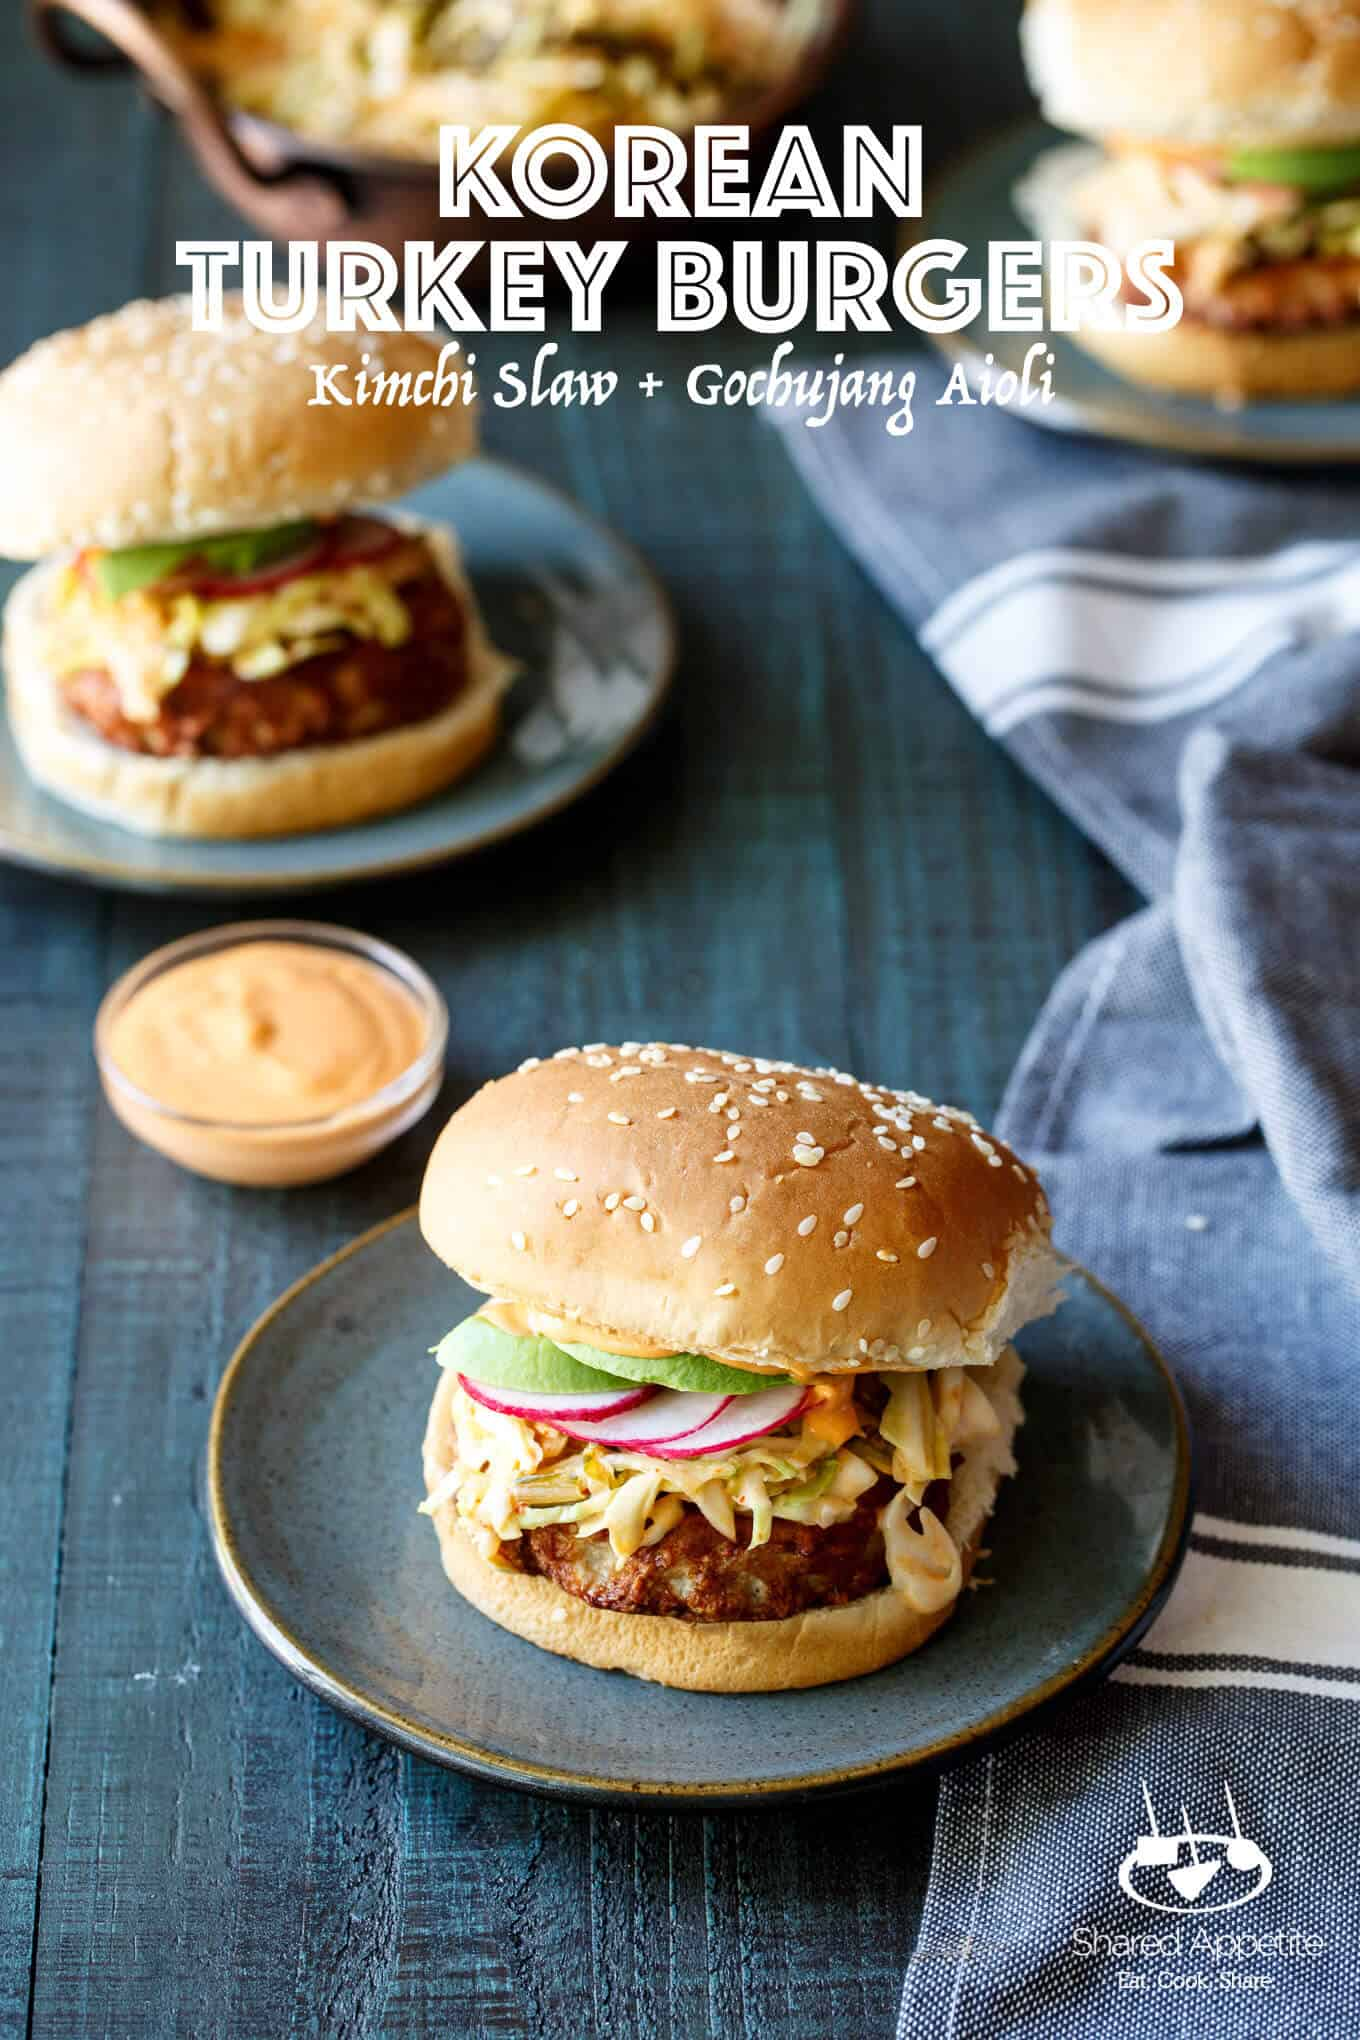 Korean Turkey Burgers with Kimchi Slaw, Avocado, and Gochujang Aioli | sharedappetite.com